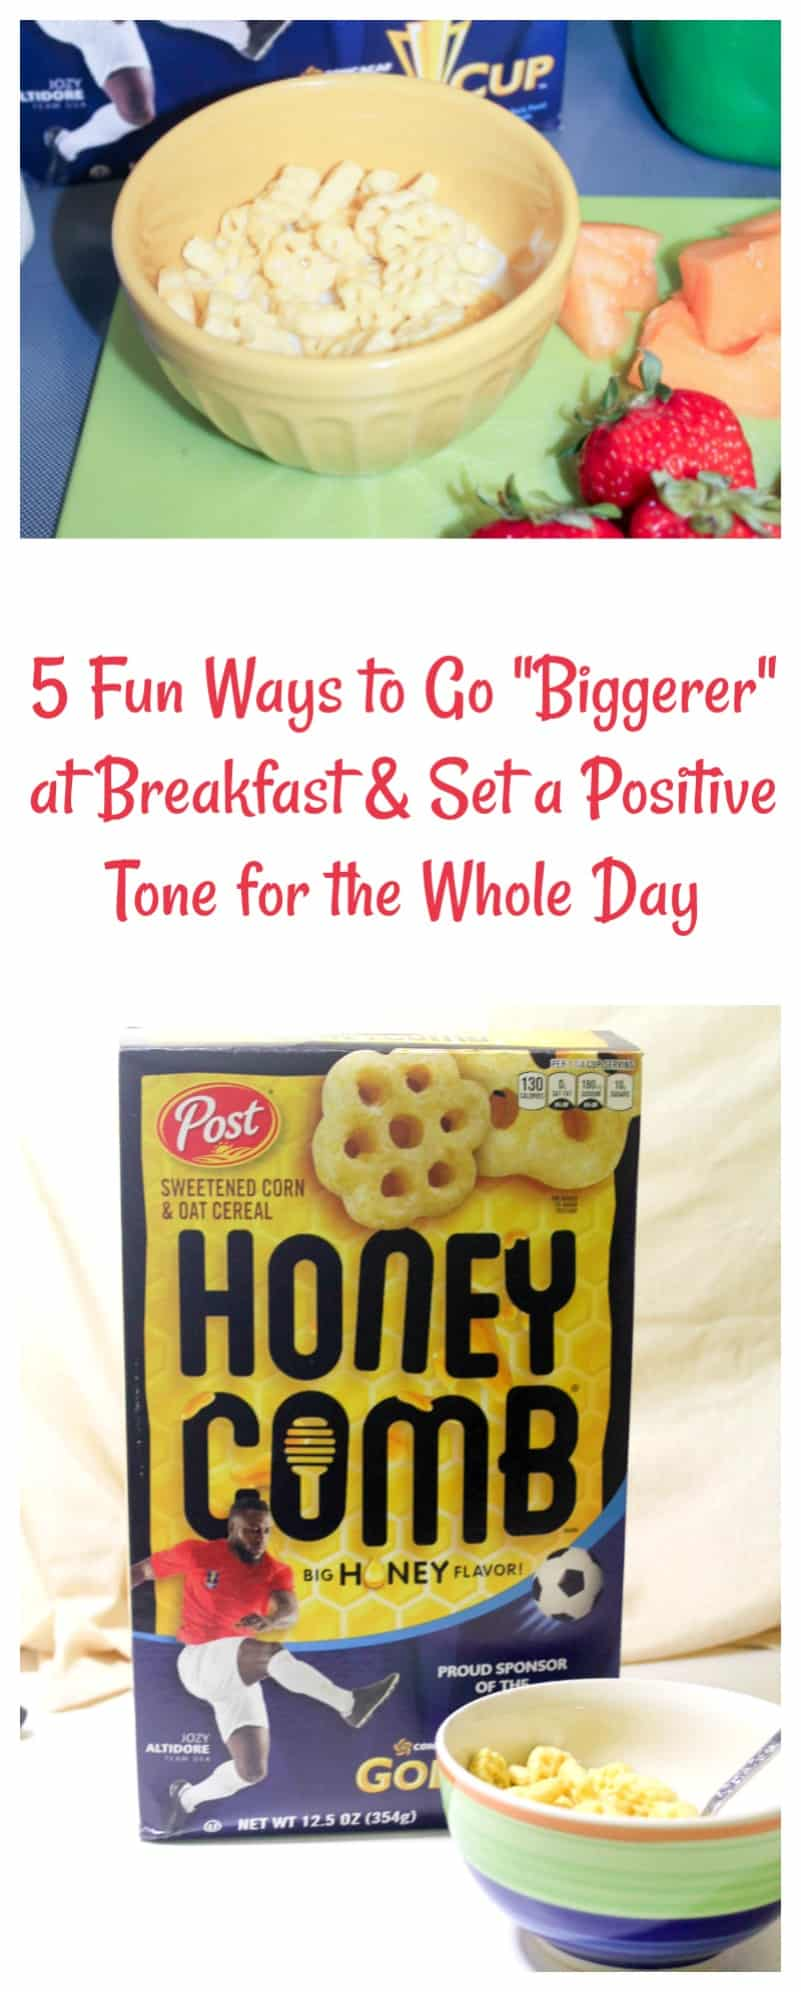 Check out 5 fun ways to